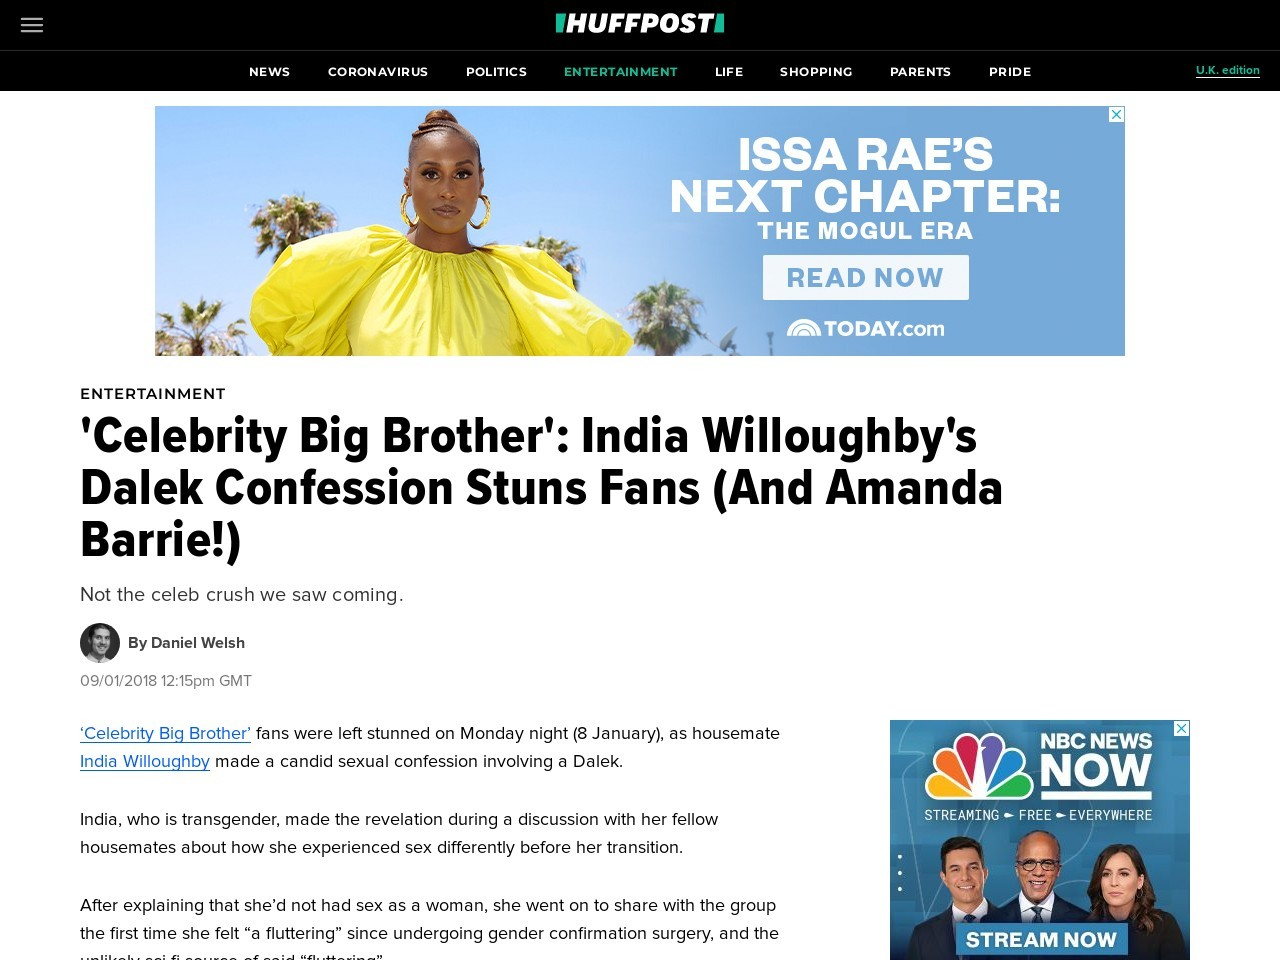 'Celebrity Big Brother': India Willoughby's Dalek Confession Stuns Fans (And Amanda Barrie!)